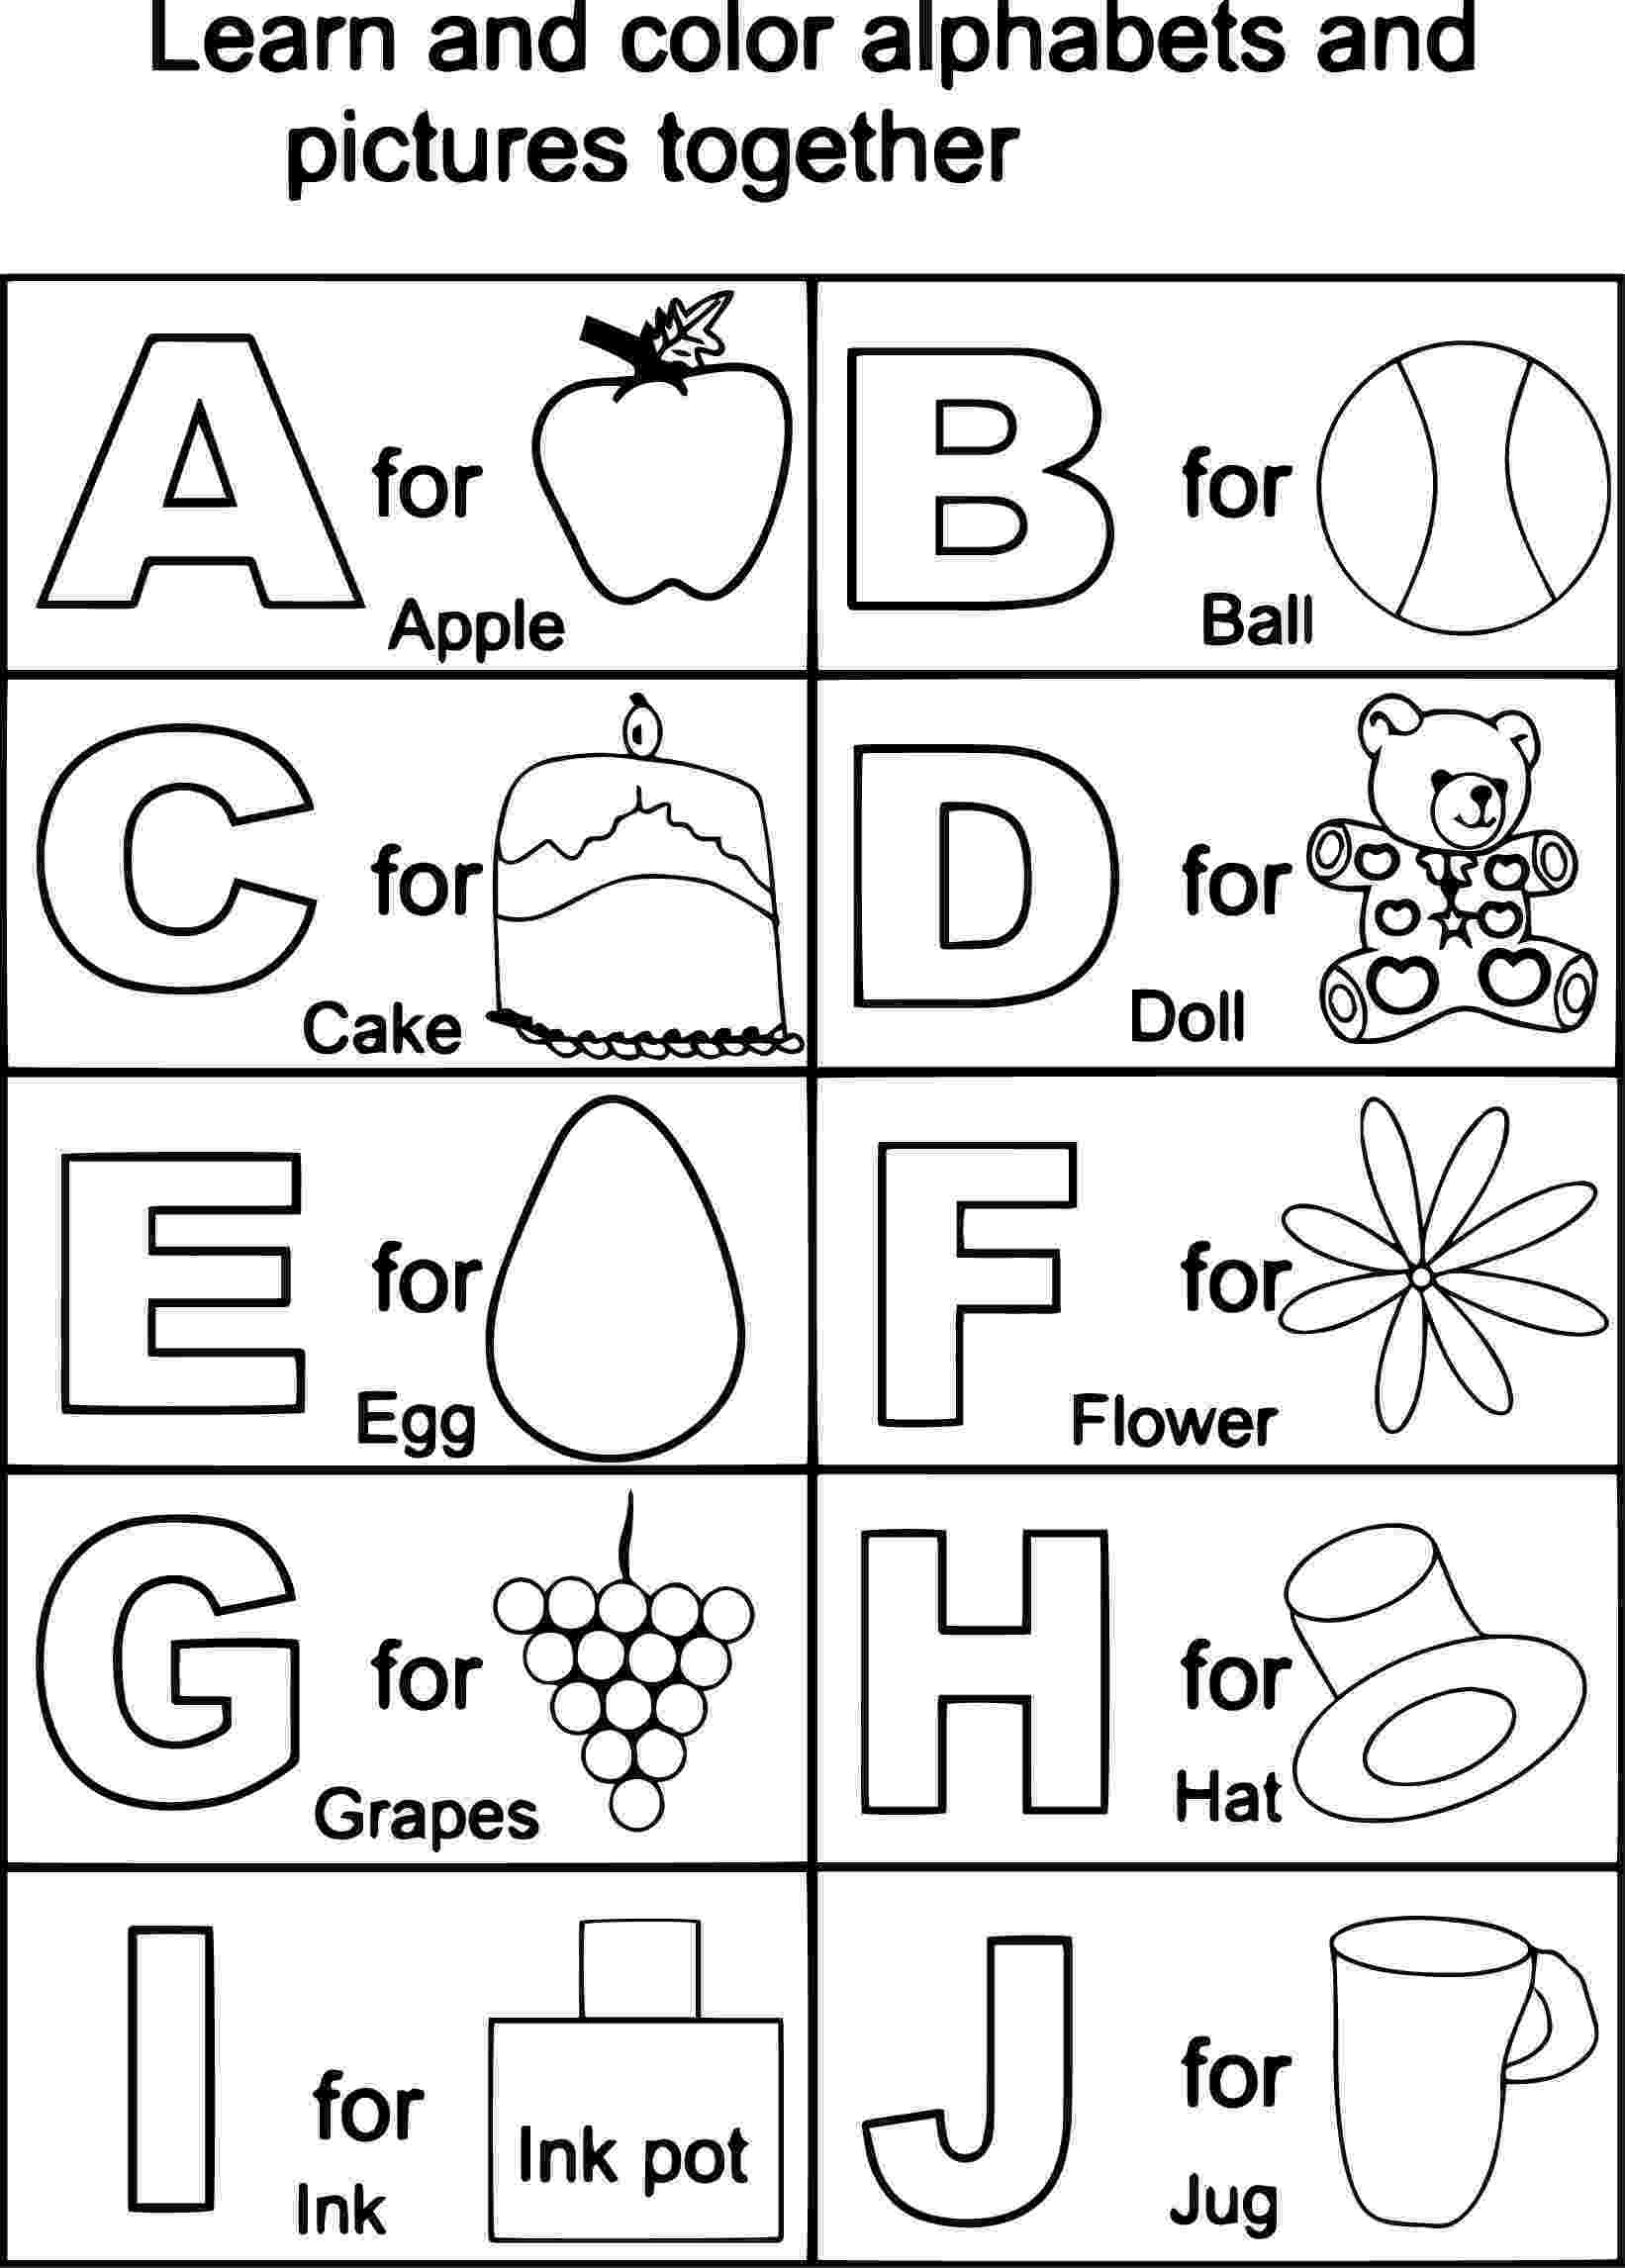 printable coloring book letters 60 alphabet flash cards to print for making learning fun book coloring printable letters